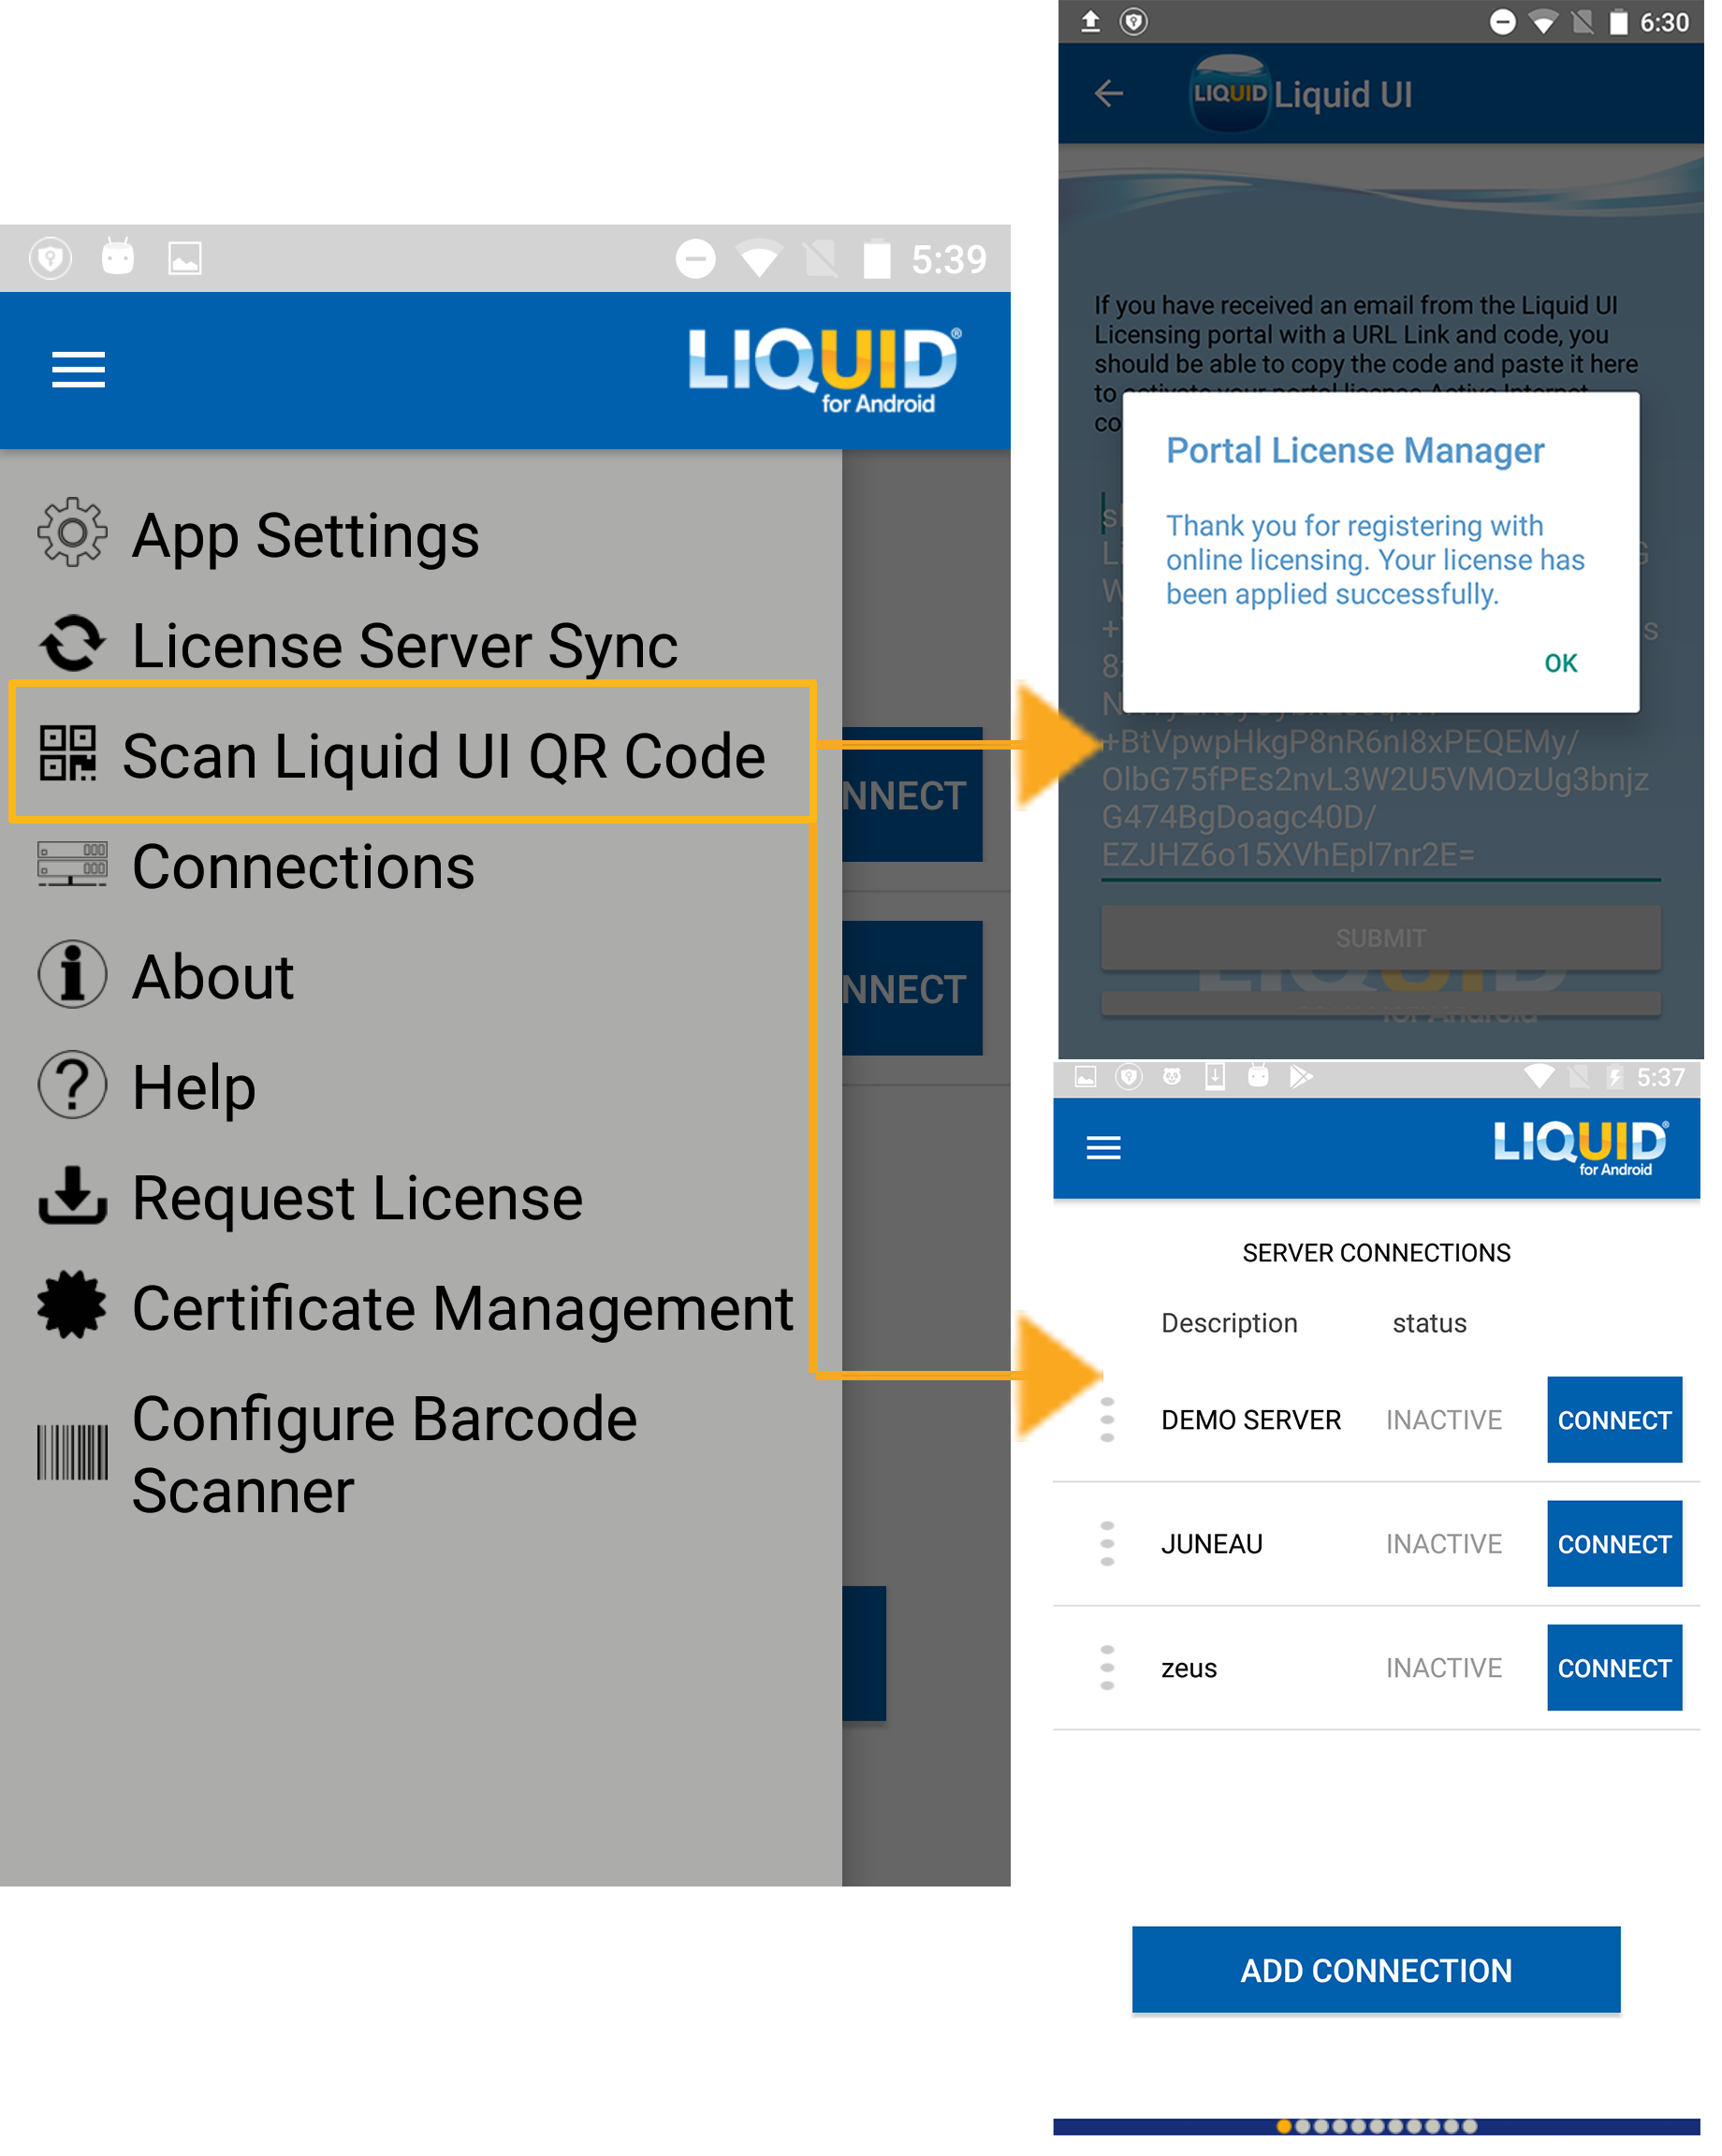 Liquid UI - Documentation - 4 03 Main Menu